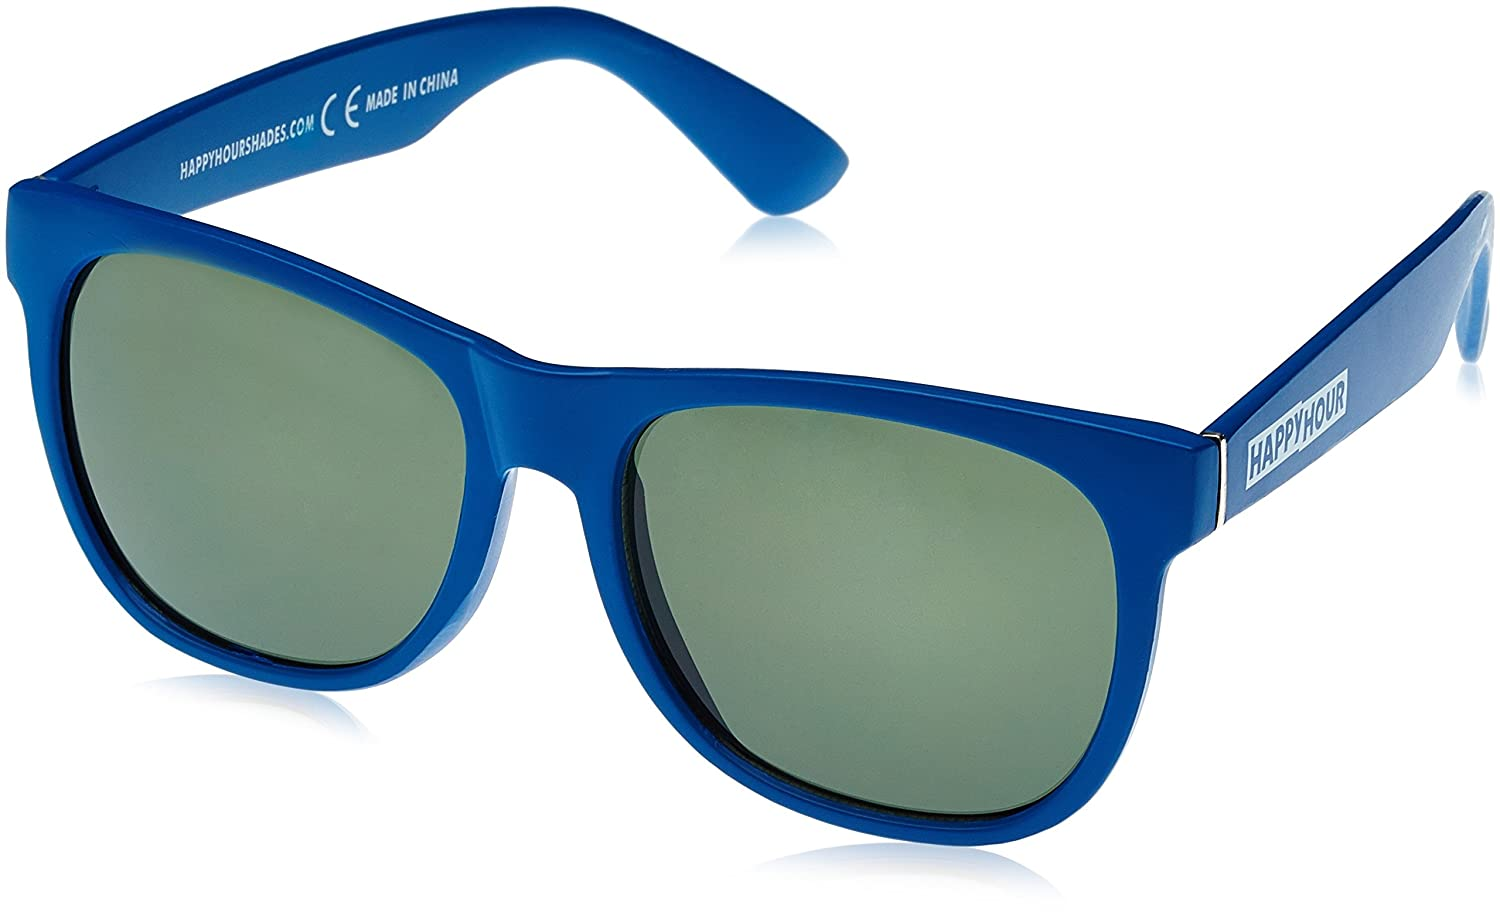 HAPPY HOUR Swag Chima Lunettes de soleil taille unique Real Blues 2OhcNk002